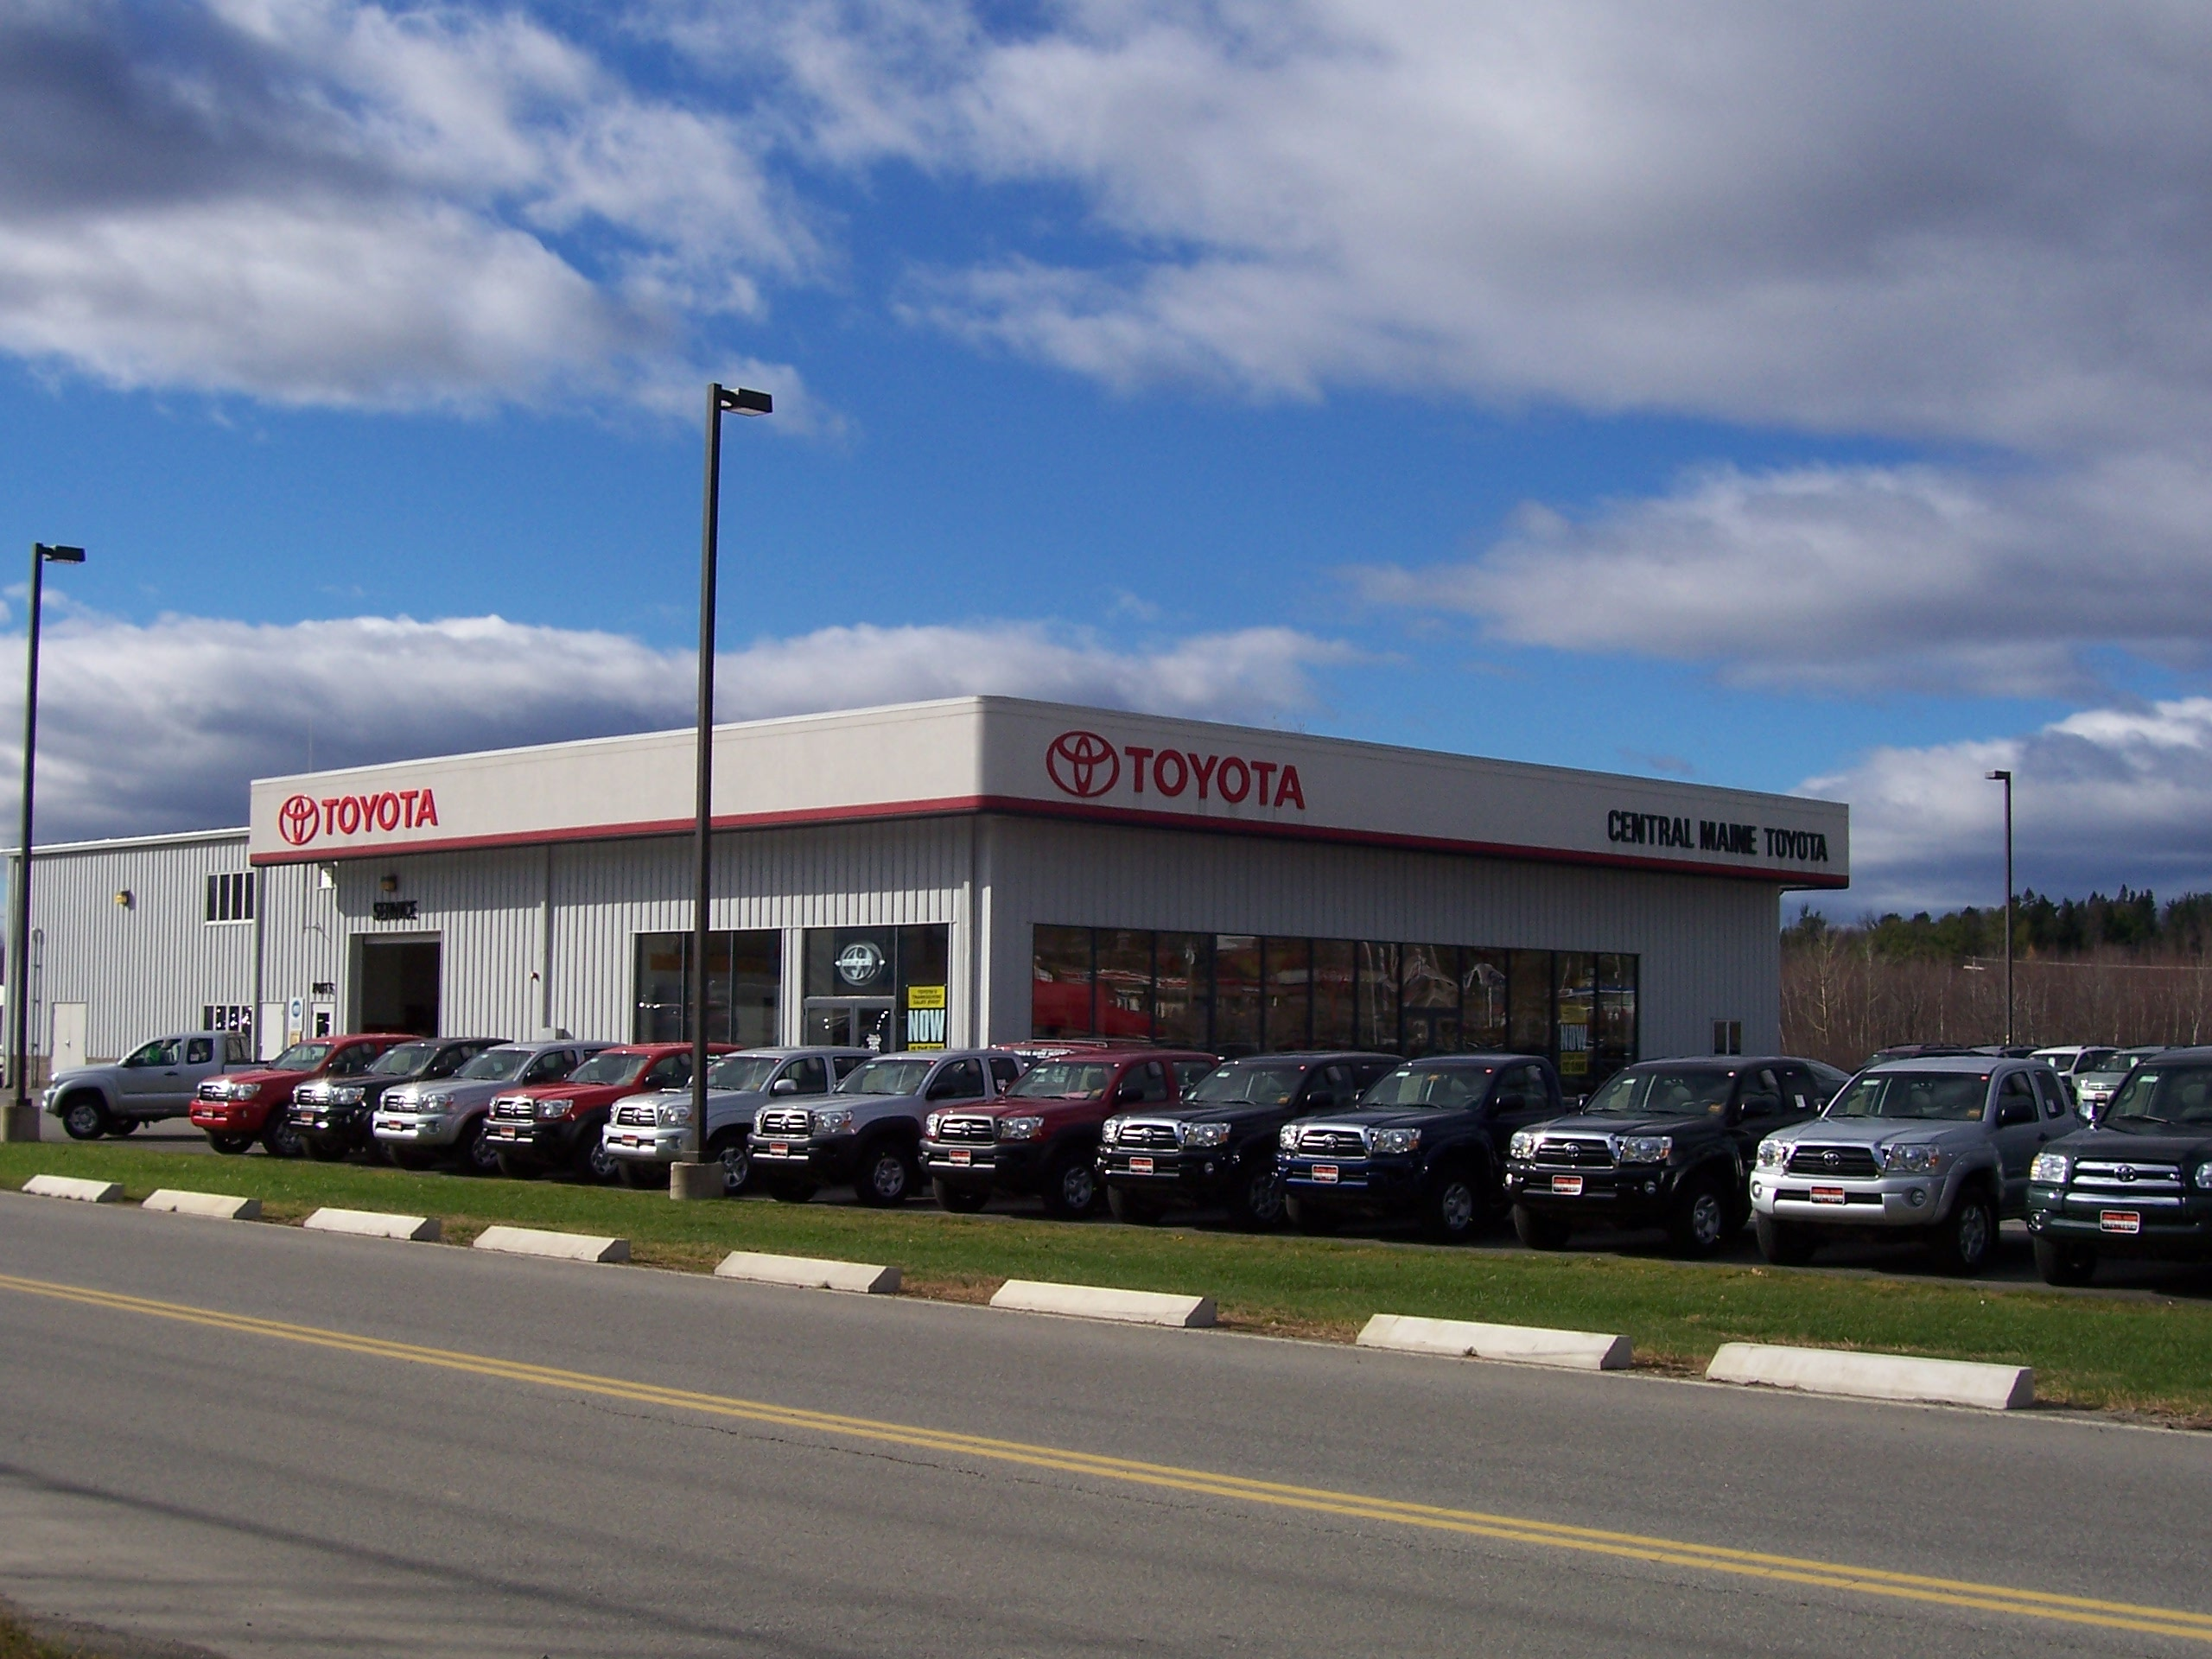 Central Maine Toyota 15 Airport Rd Waterville ME YP